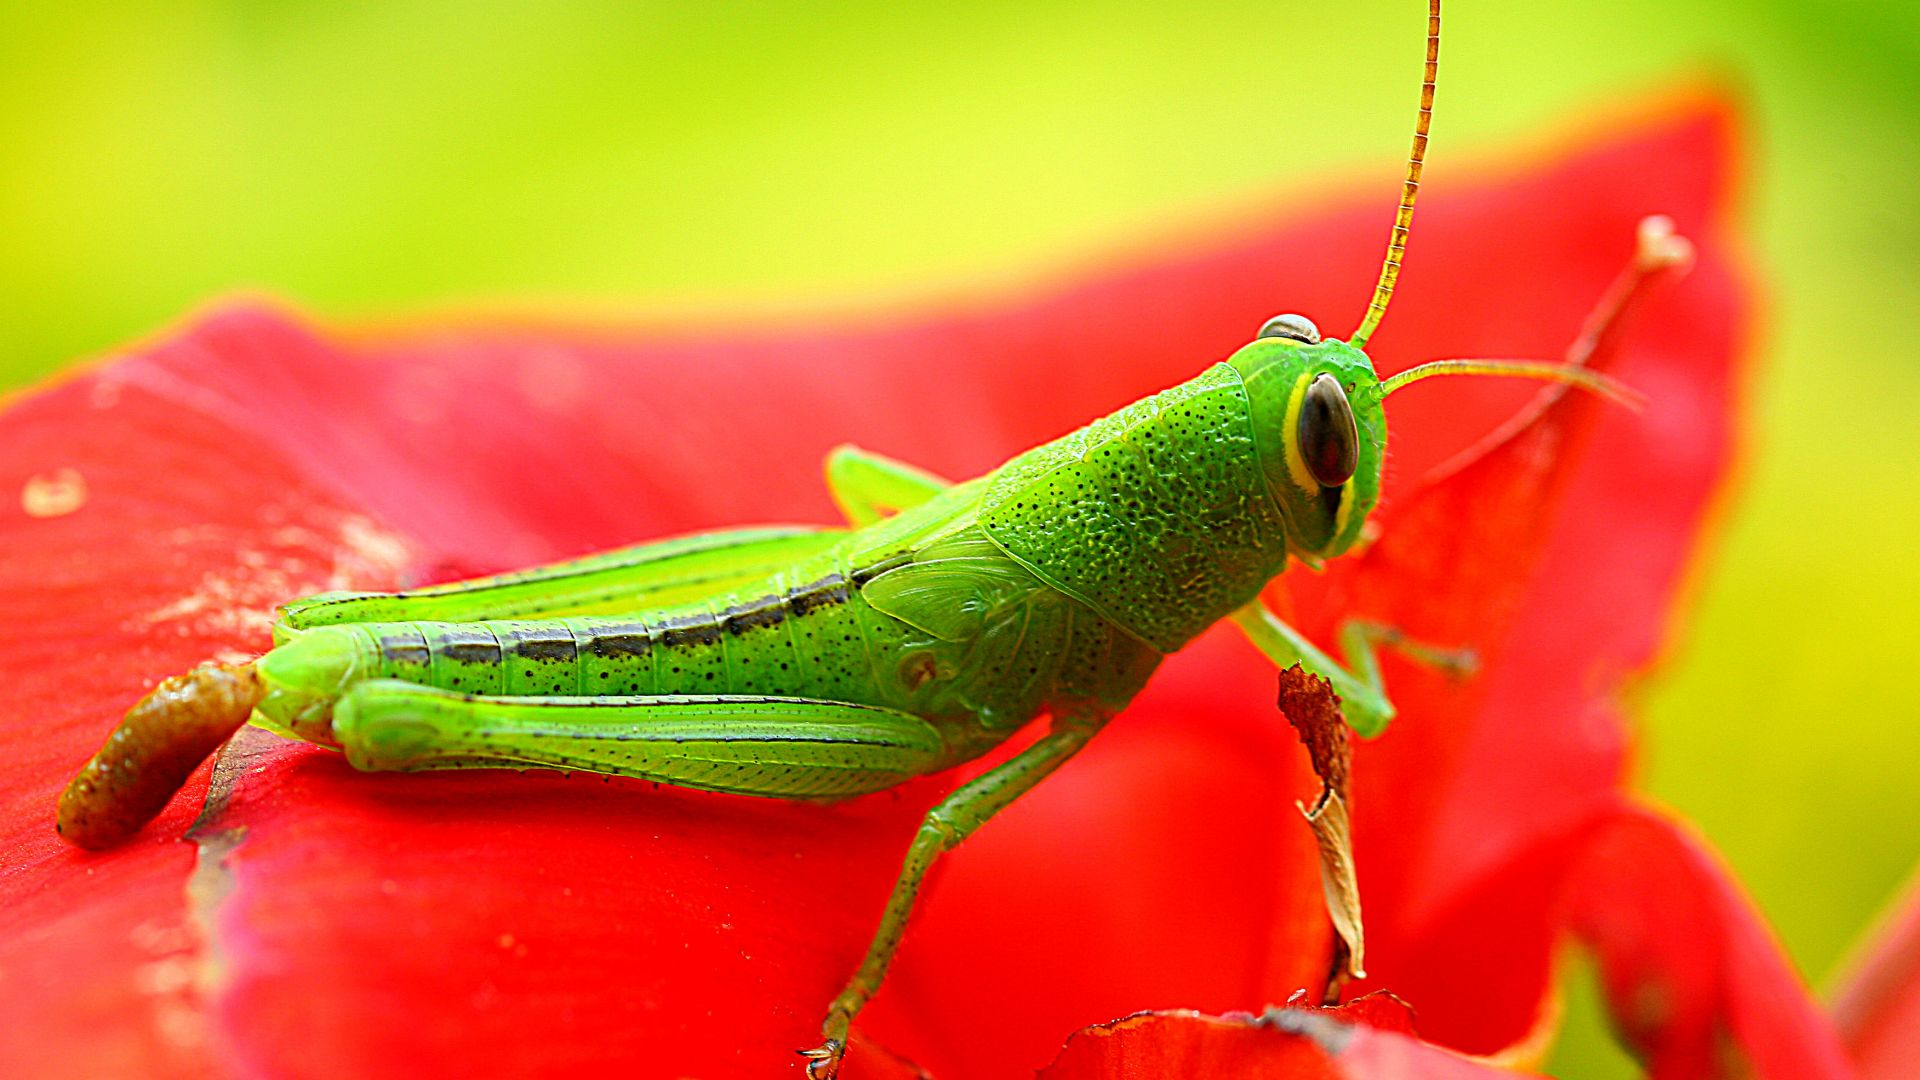 grasshopper, grig, green, flower, red, insects (horizontal)